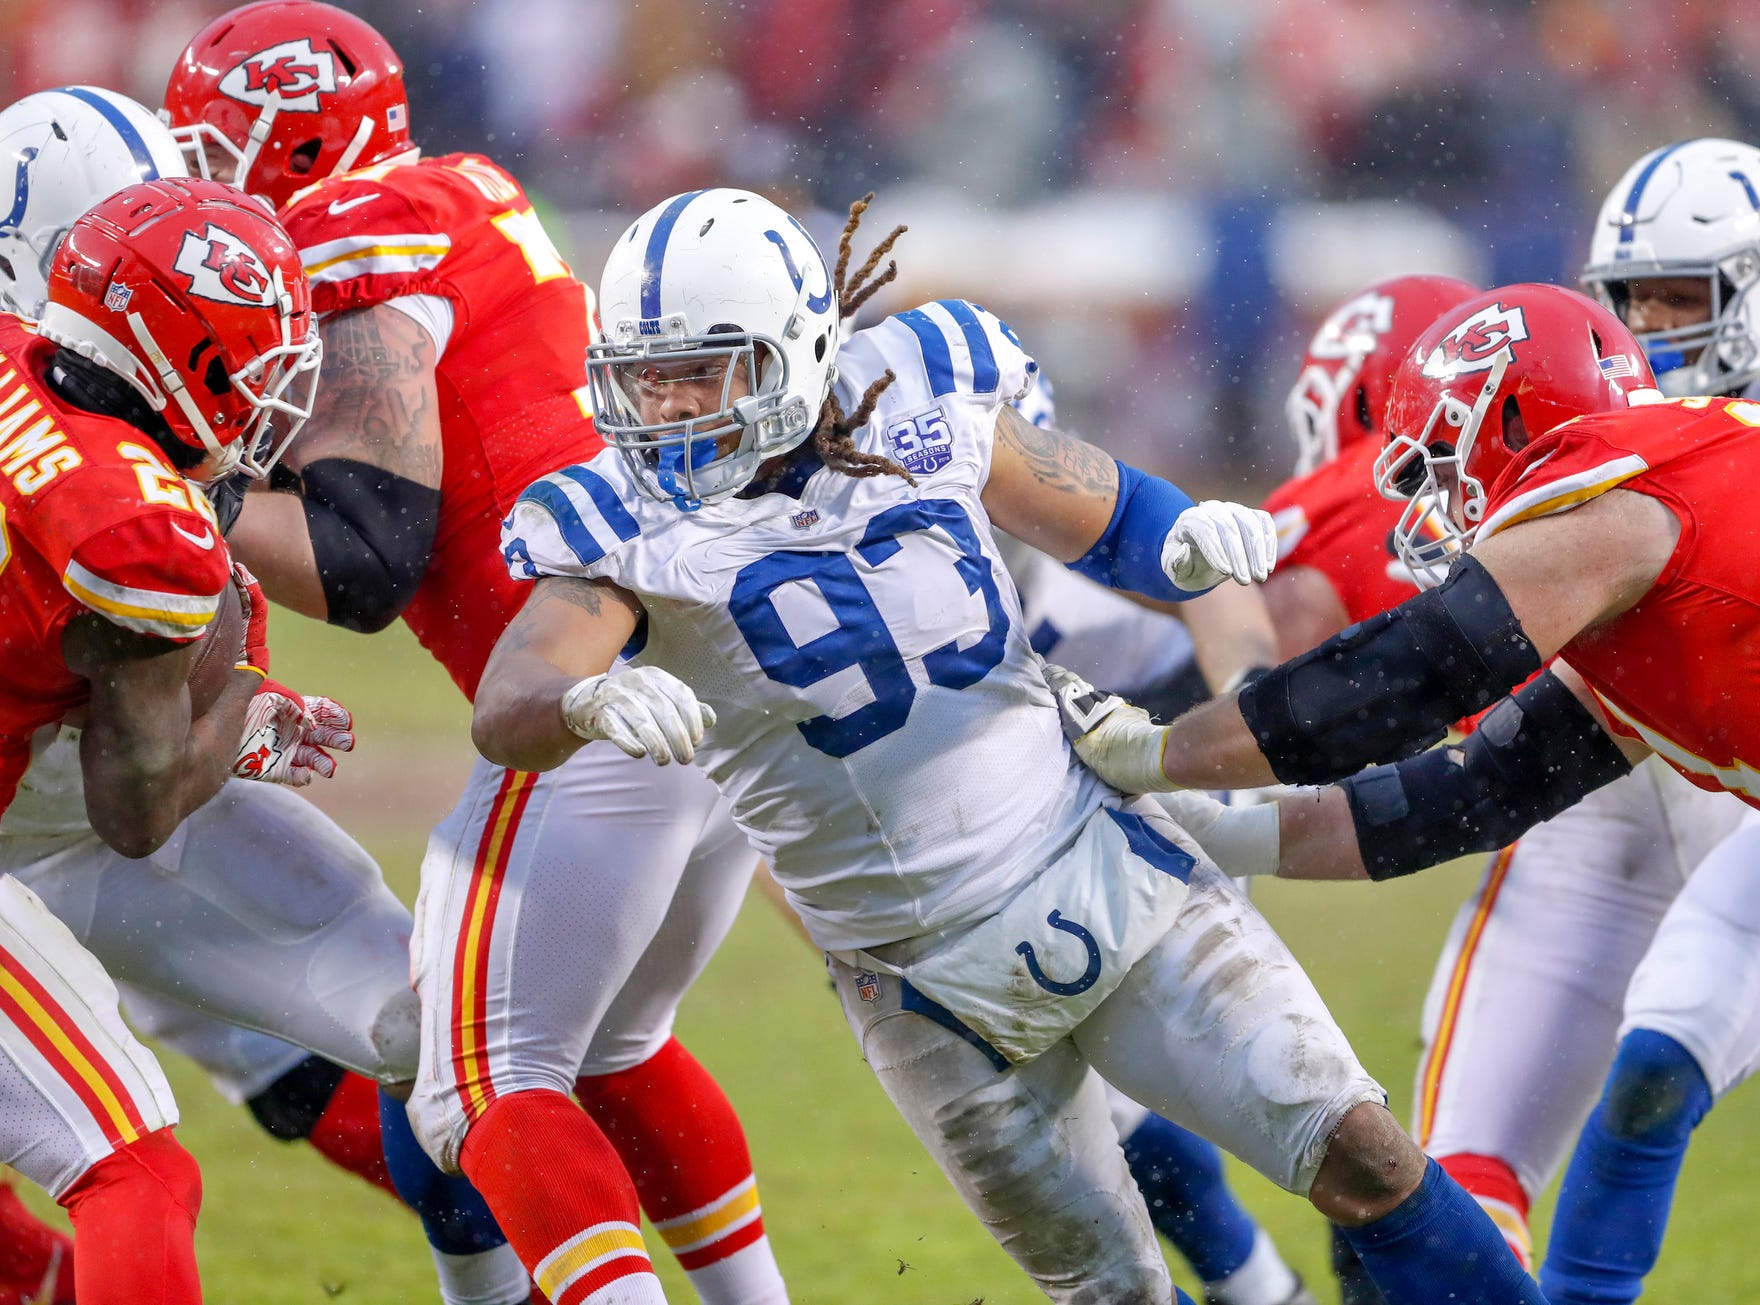 Indianapolis Colts defensive end Jabaal Sheard (93) rushes towards Kansas City Chiefs quarterback Patrick Mahomes (15) in the second quarter at Arrowhead Stadium in Kansas City, Mo., on Saturday, Jan. 12, 2019.